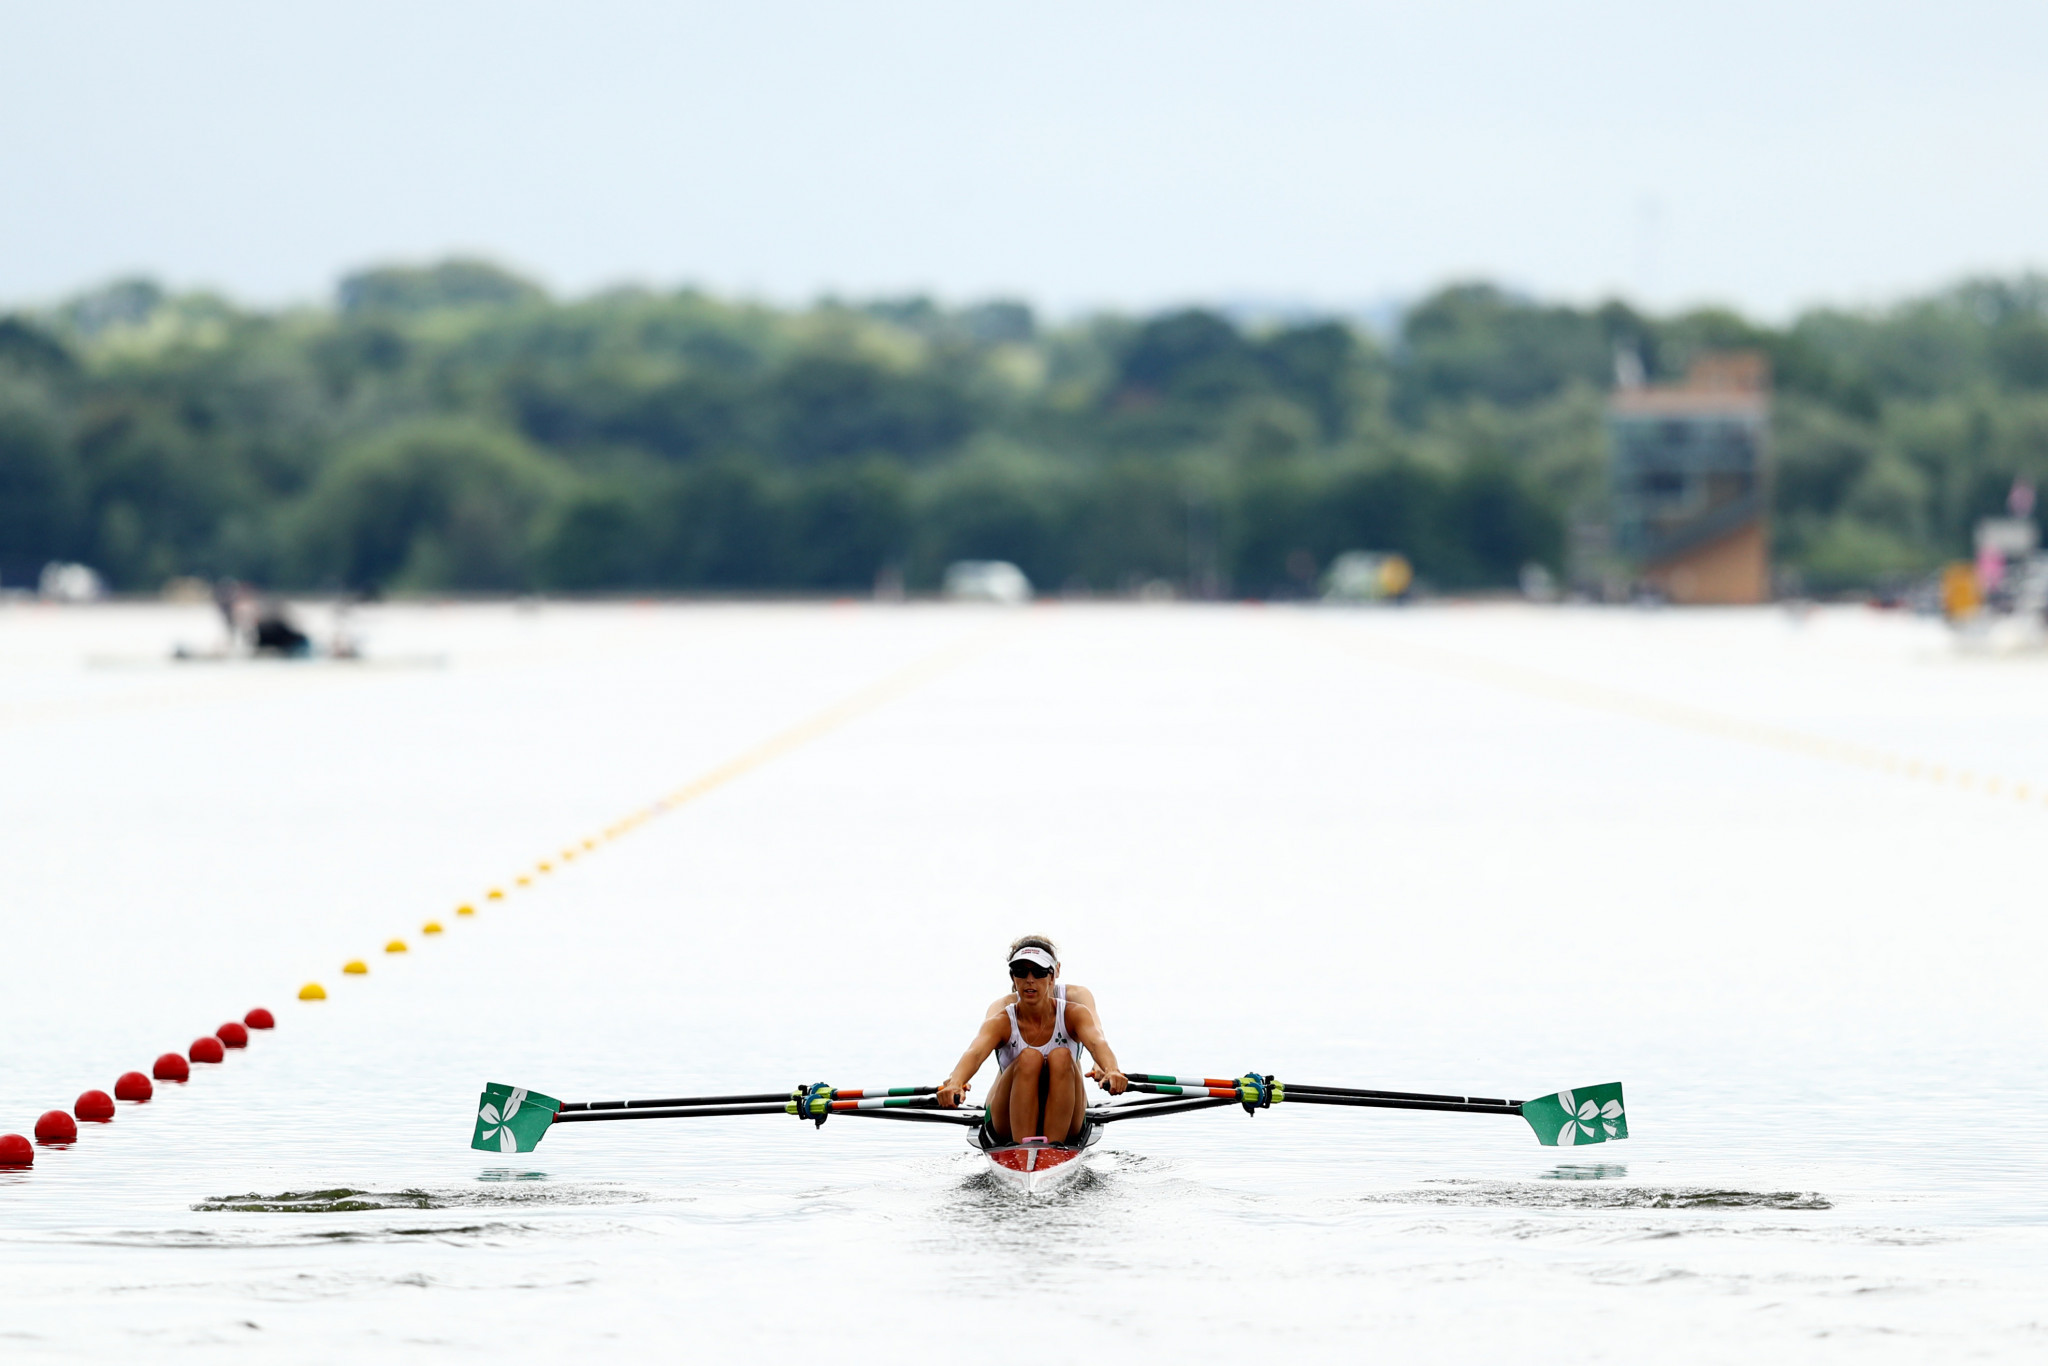 The Championships began with rowing action on day one ©Getty Images